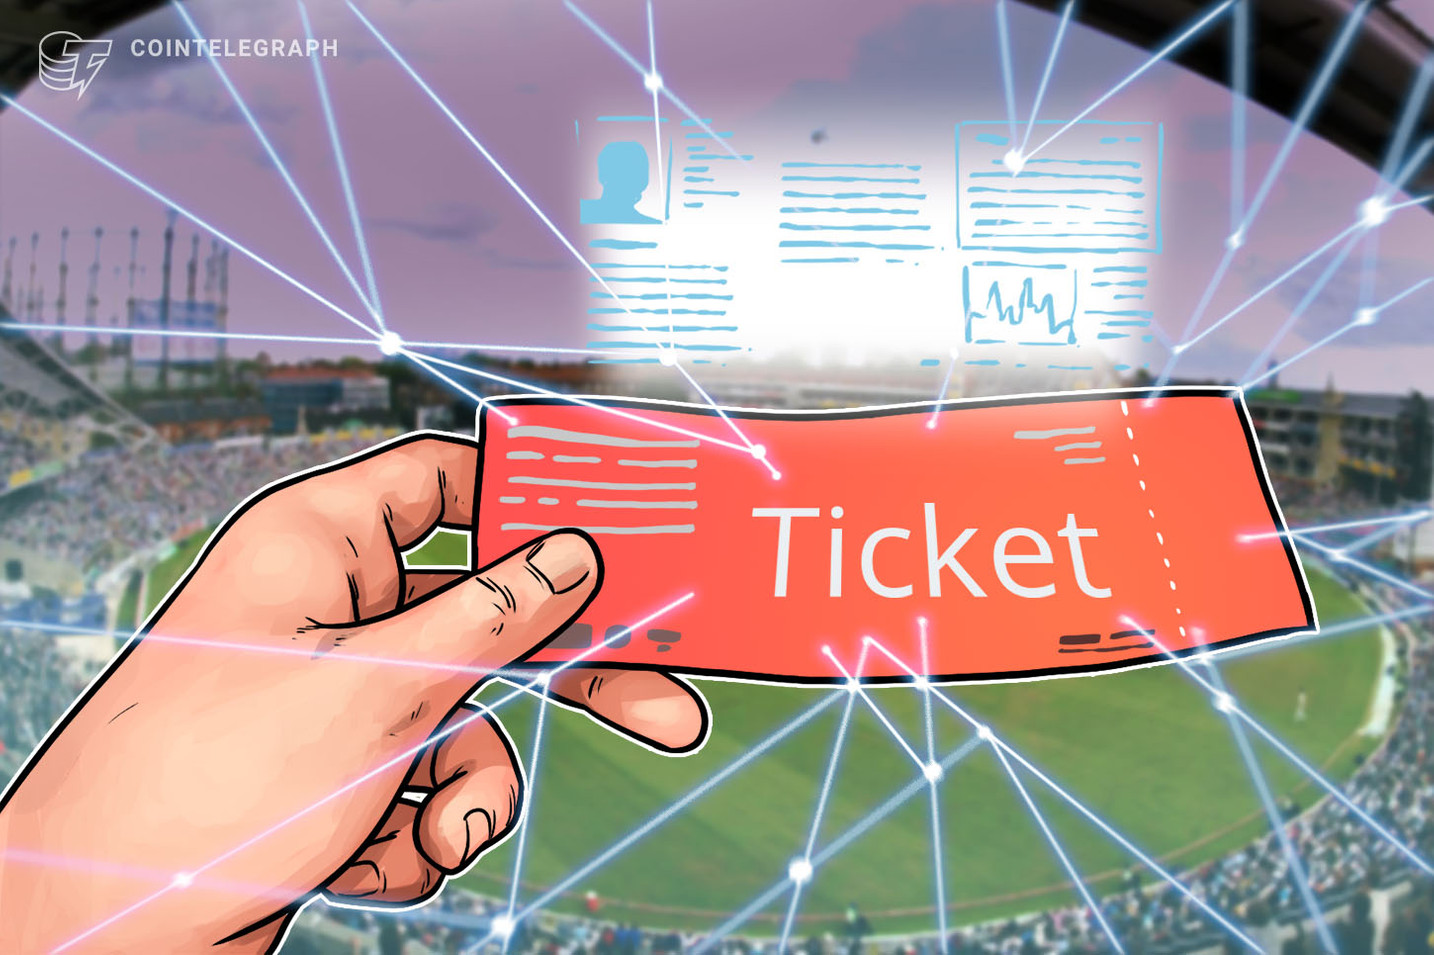 UK's Lancashire Cricket Club Now Uses Blockchain Platform to Sell Tickets